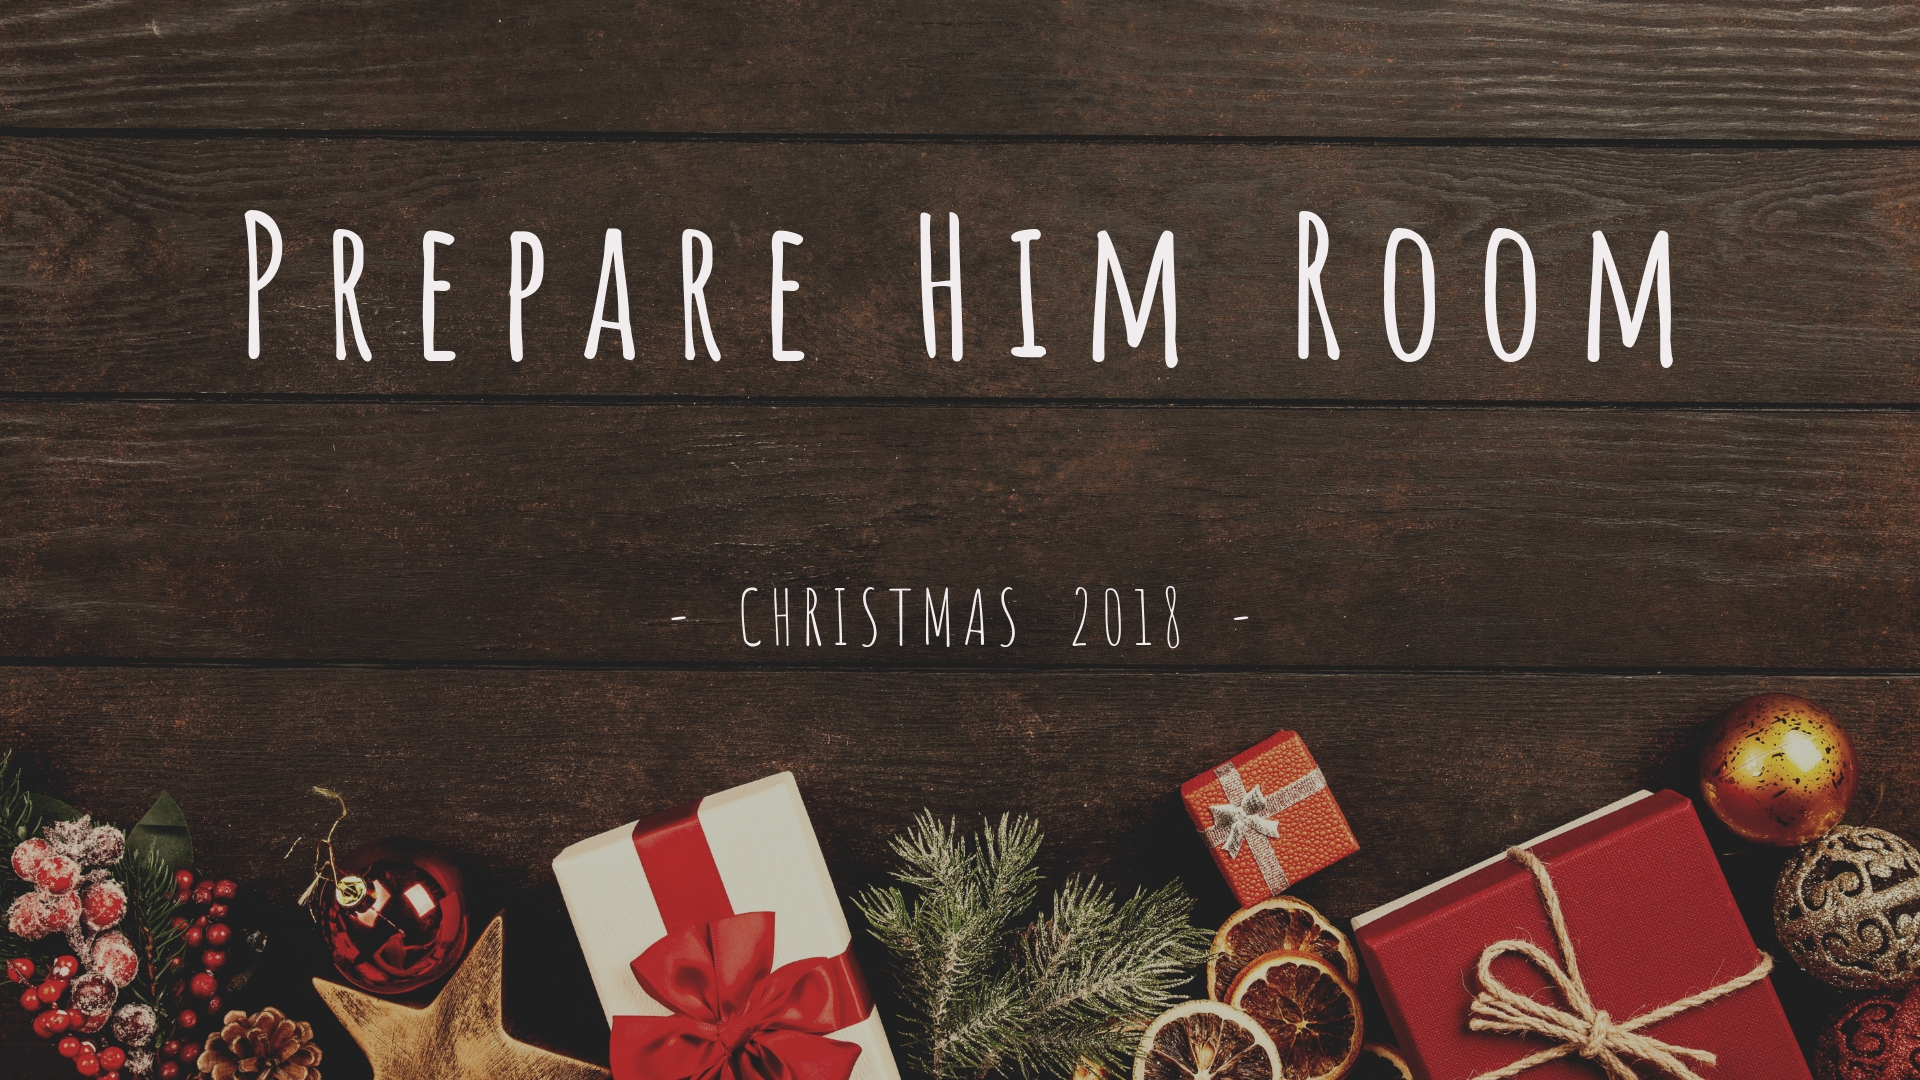 Prepare Him Room sermon graphic.jpg